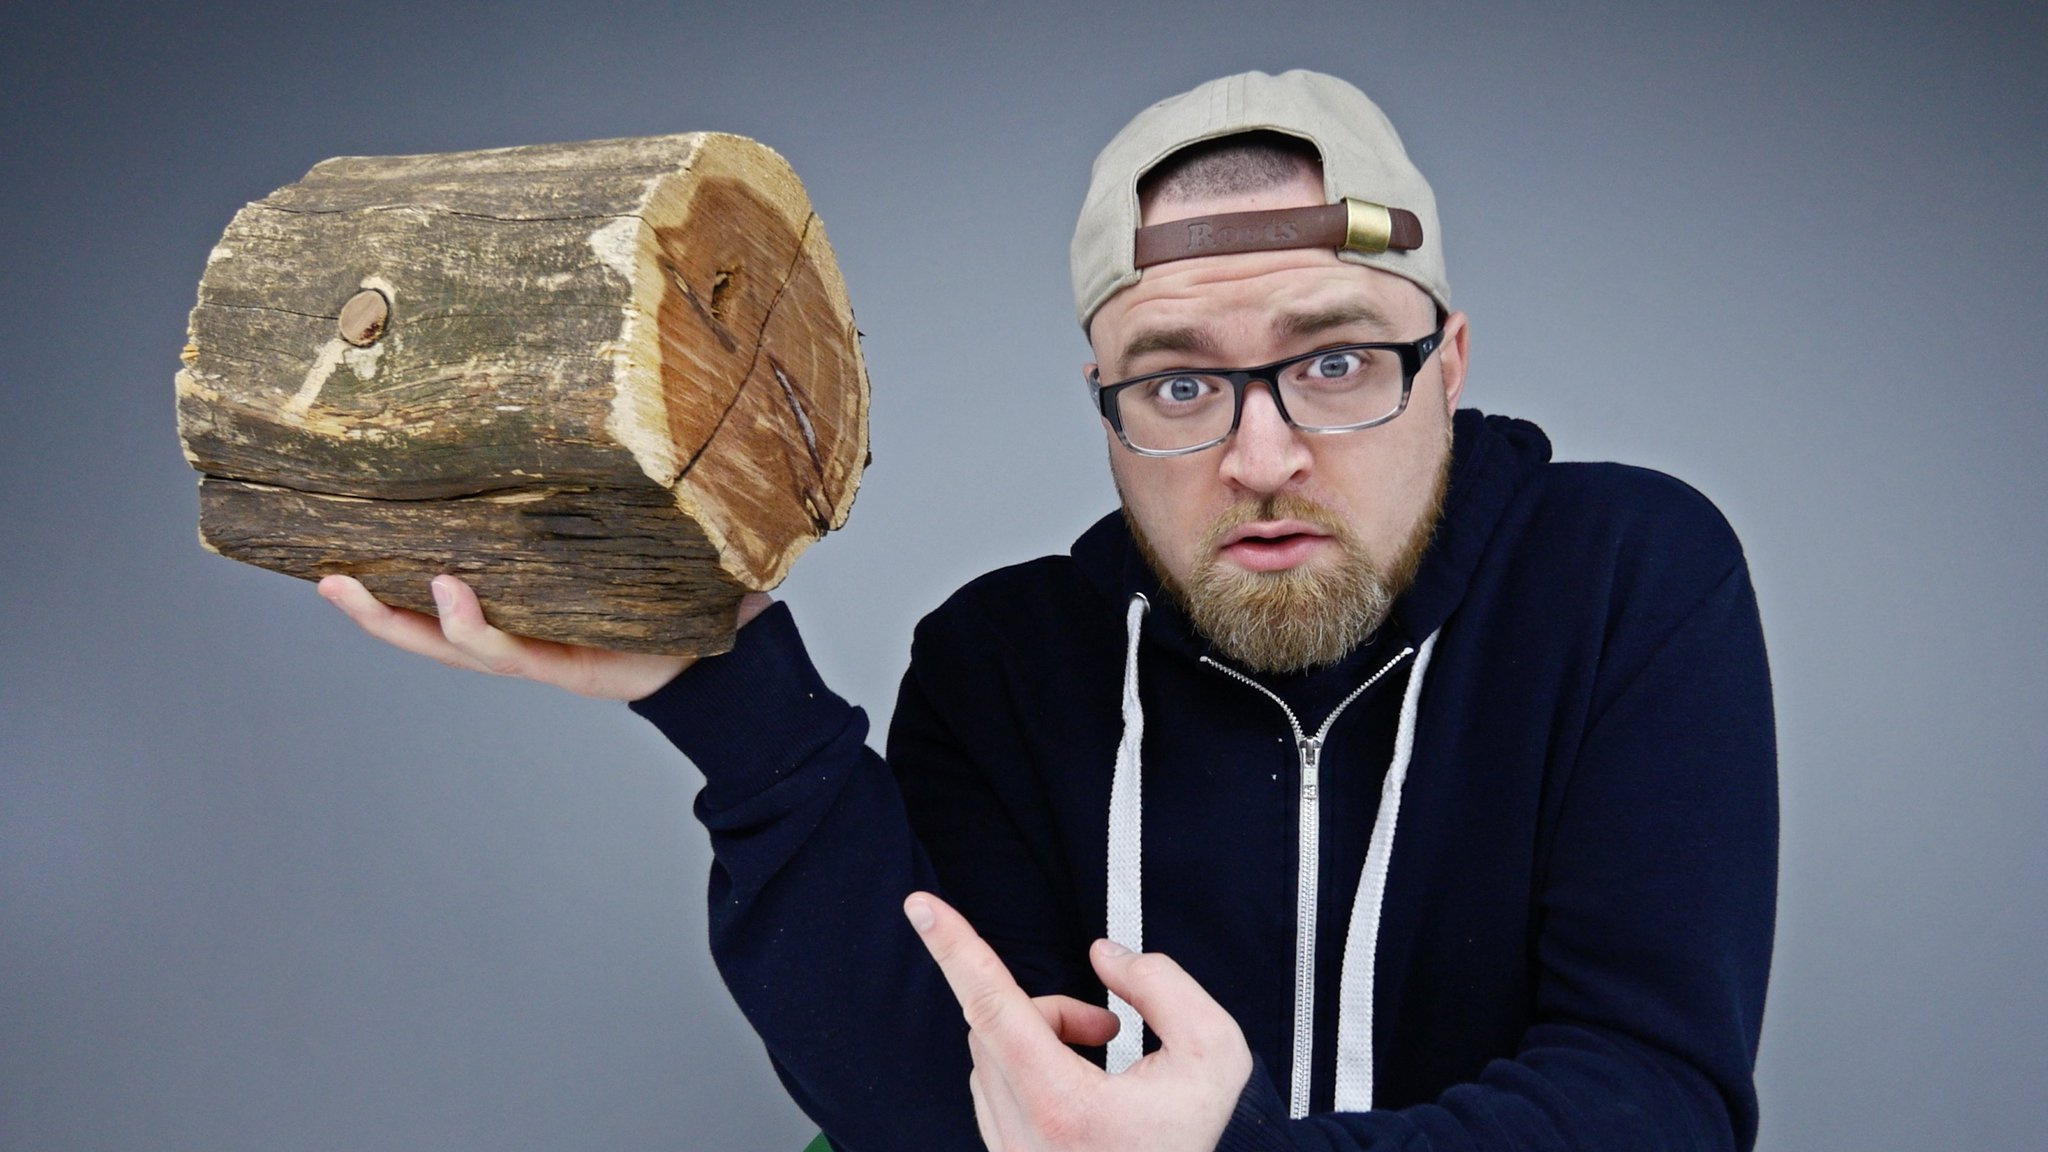 Lewis Hilsenteger On Twitter Quot New Video The Wood Log Of